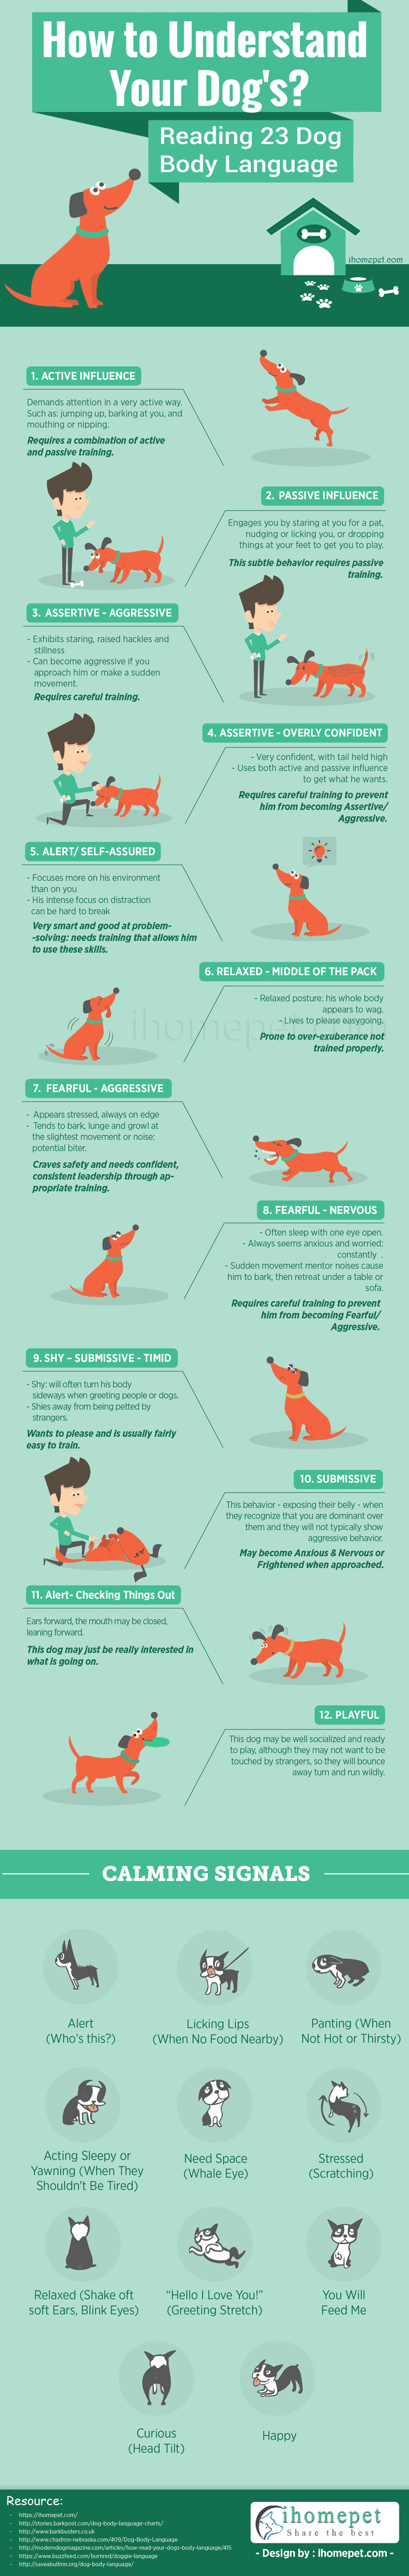 Understand Your Dog – Read 23 Dog Body Language Cues [Infographic]